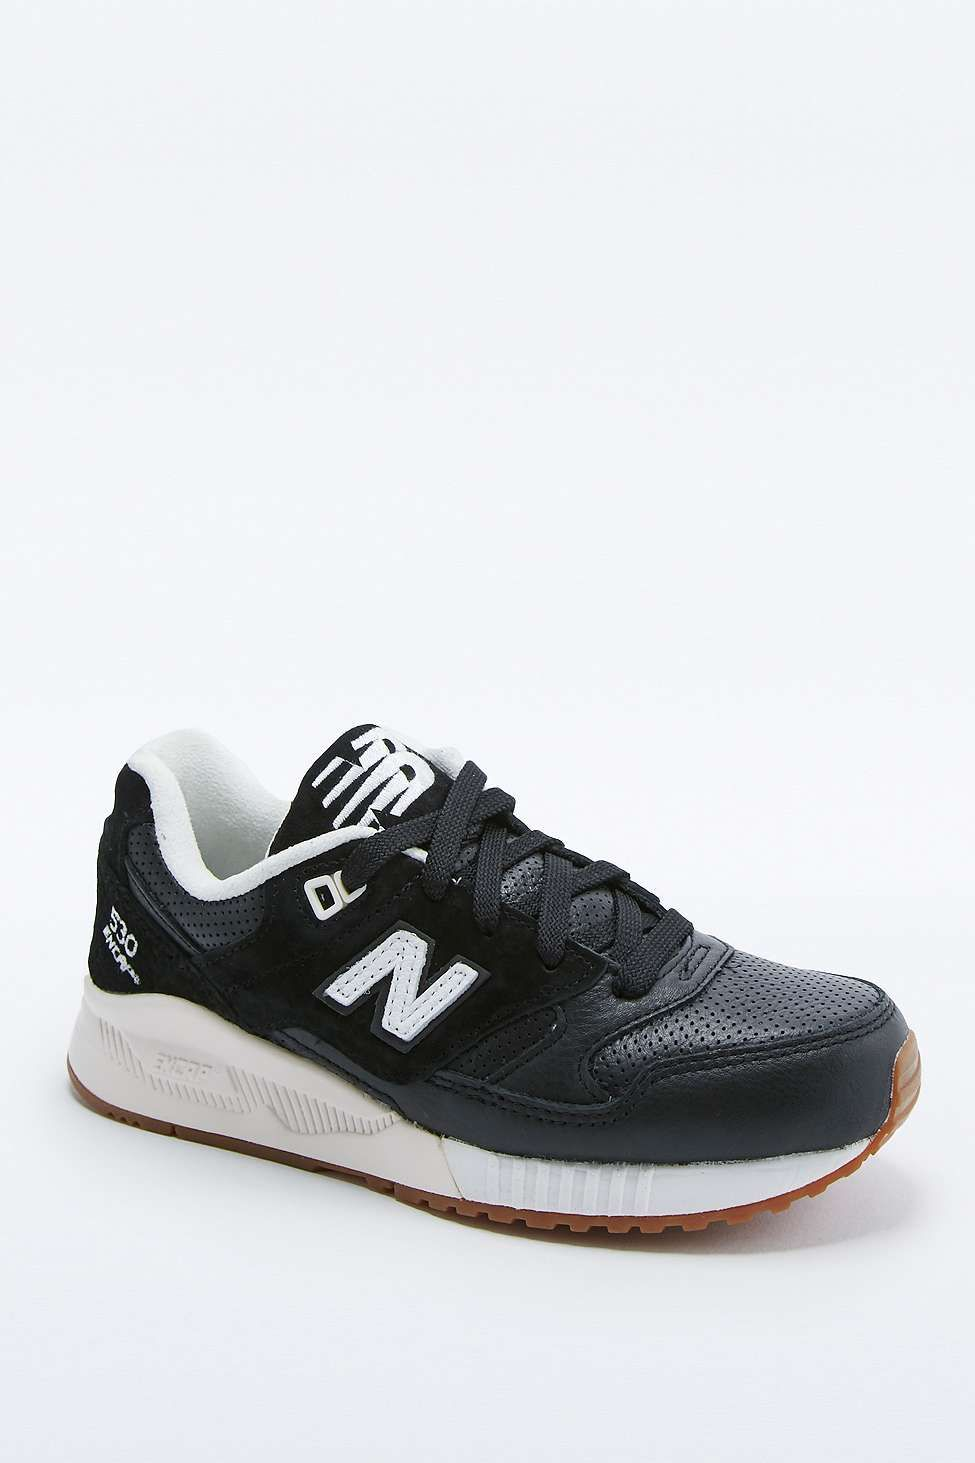 new balance 530 white leather trainers